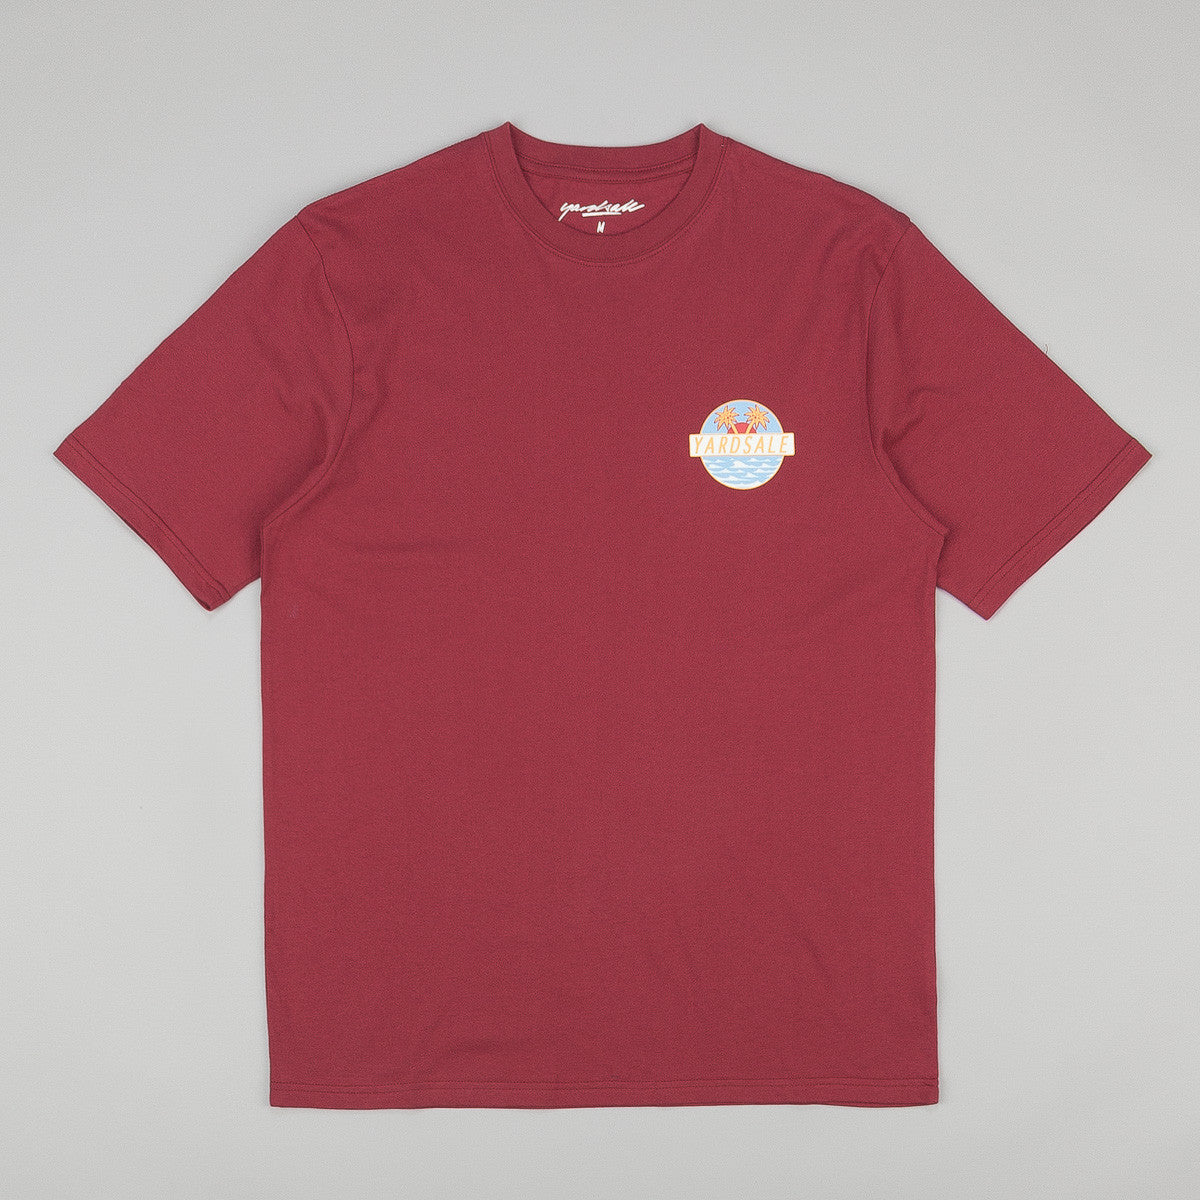 Yardsale Short Sleeve T-Shirt - Burgundy